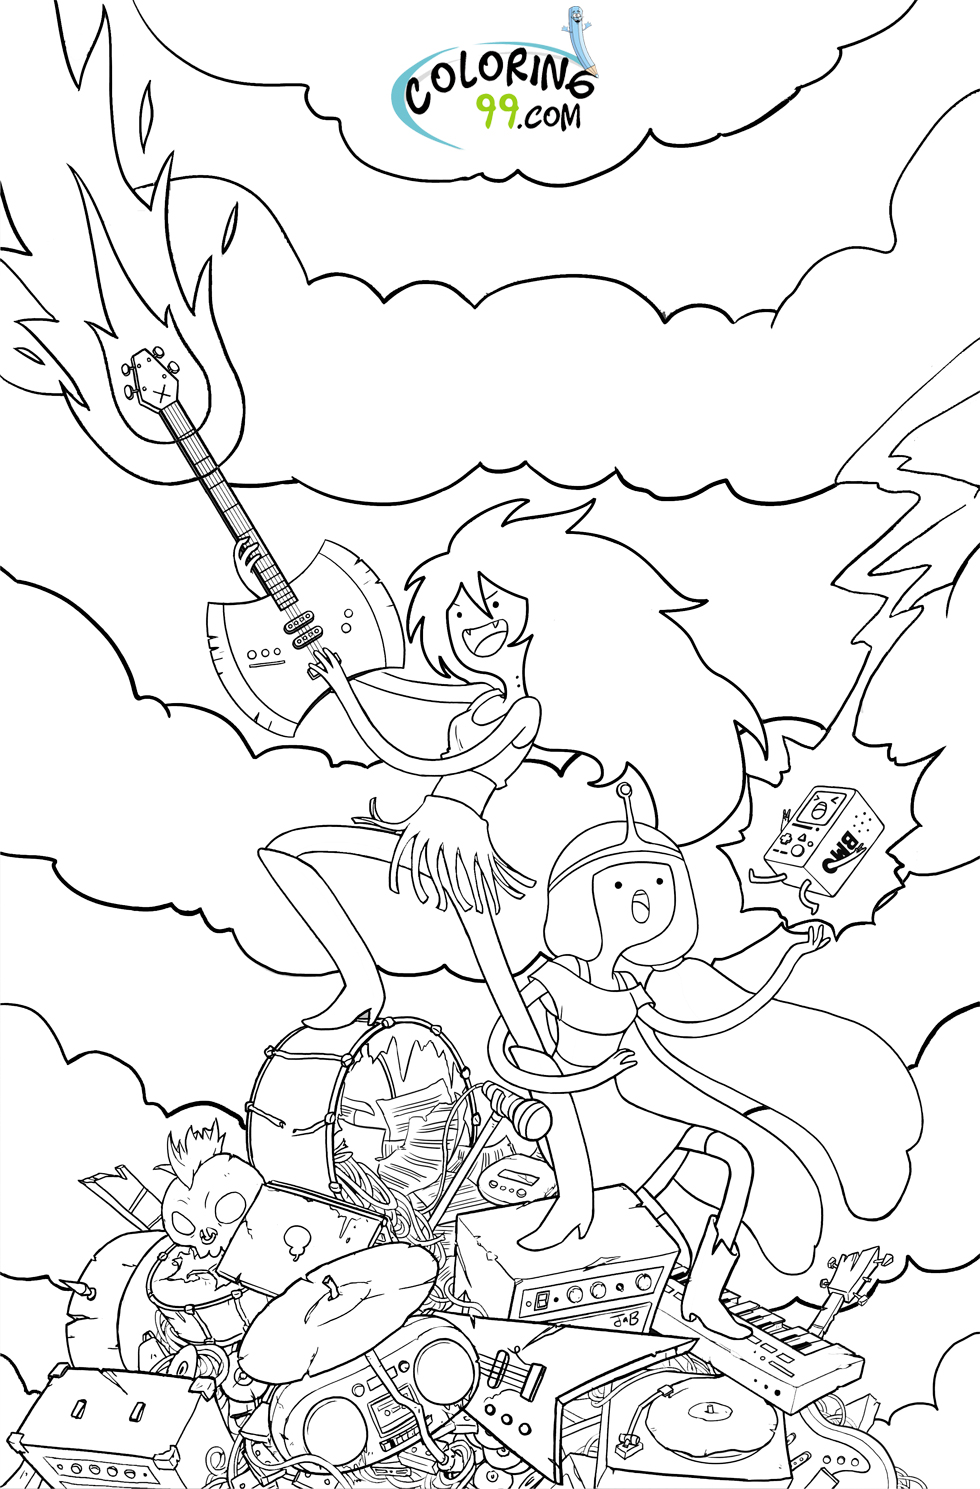 Adventure Time Coloring Pages Team Colors Adventure Time Colouring Pages